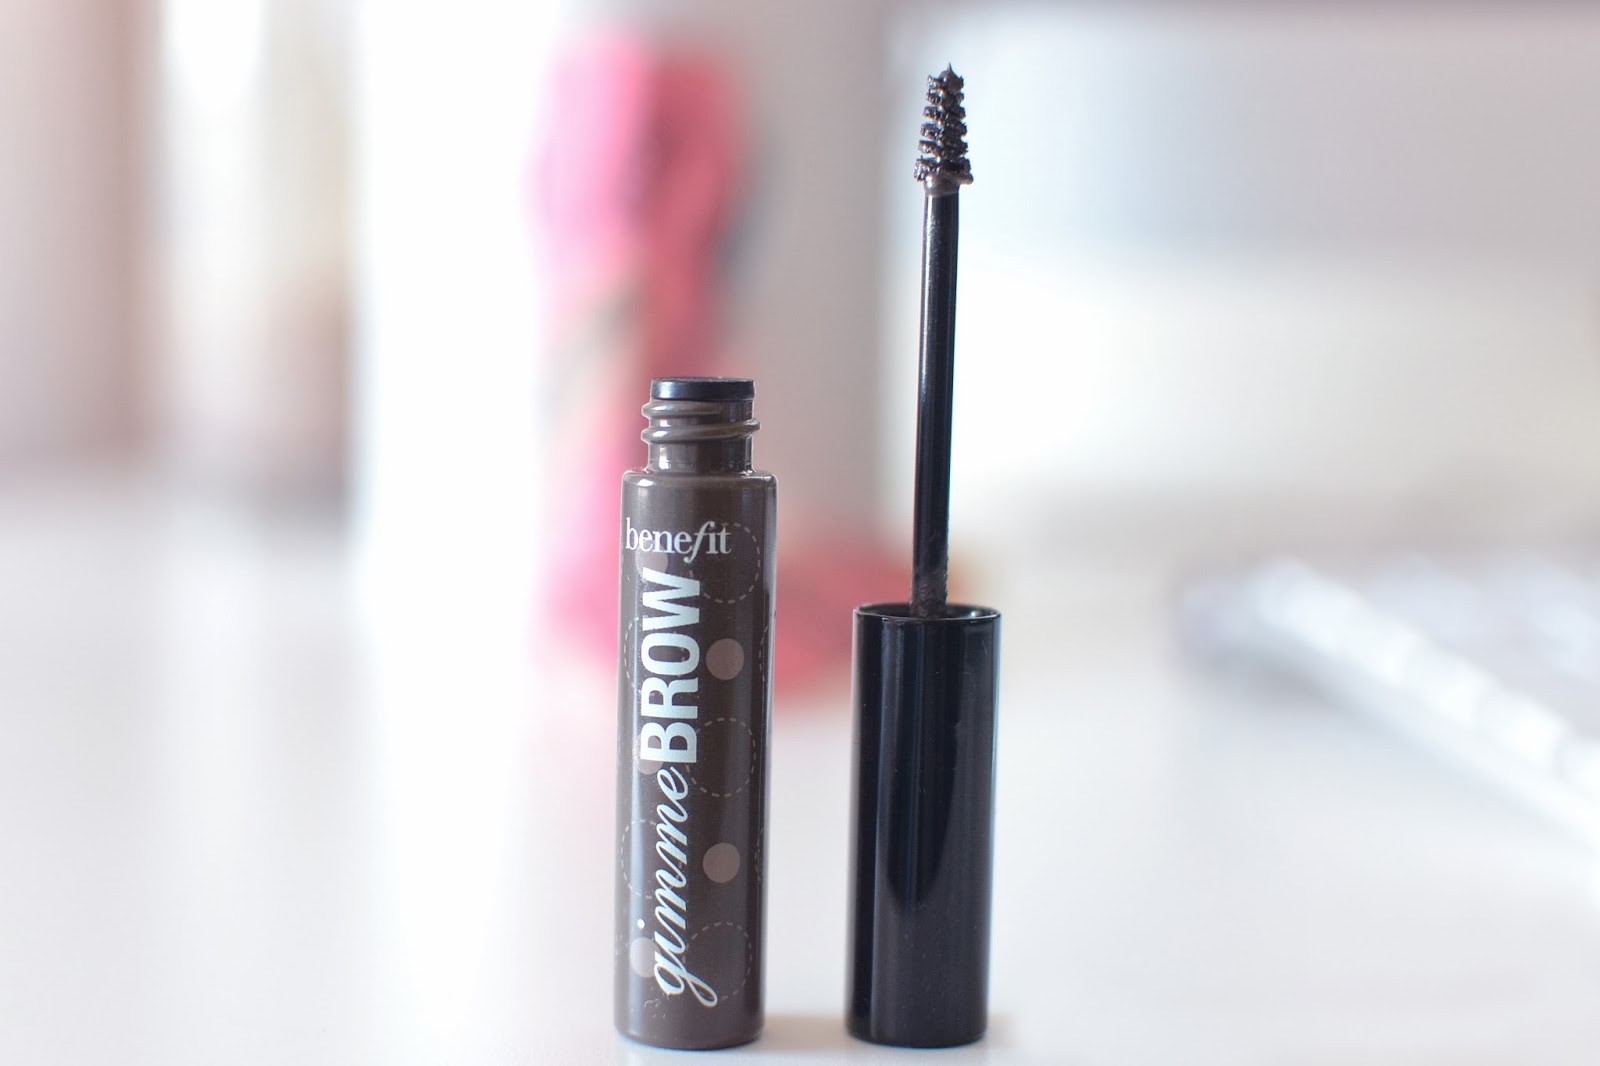 Benefit Gimme Brow, Benefit Cosmetics Gimme Brow